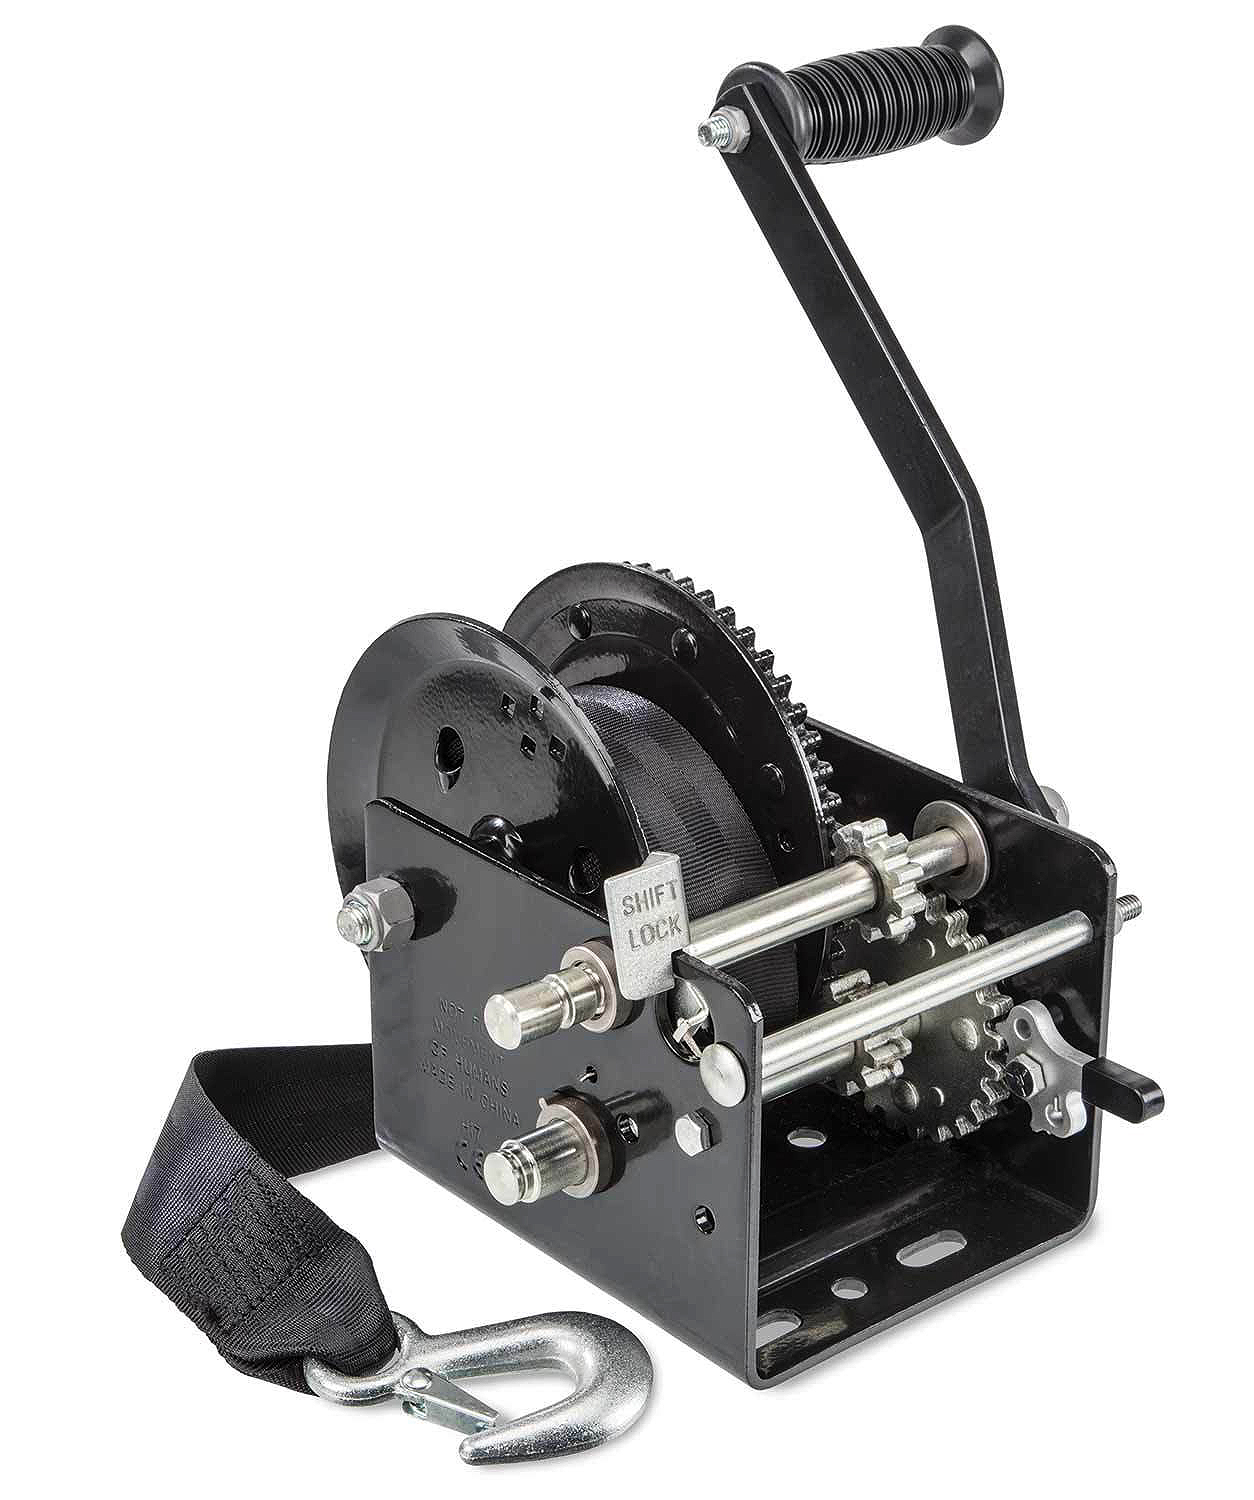 Selecting a Trailer Winch